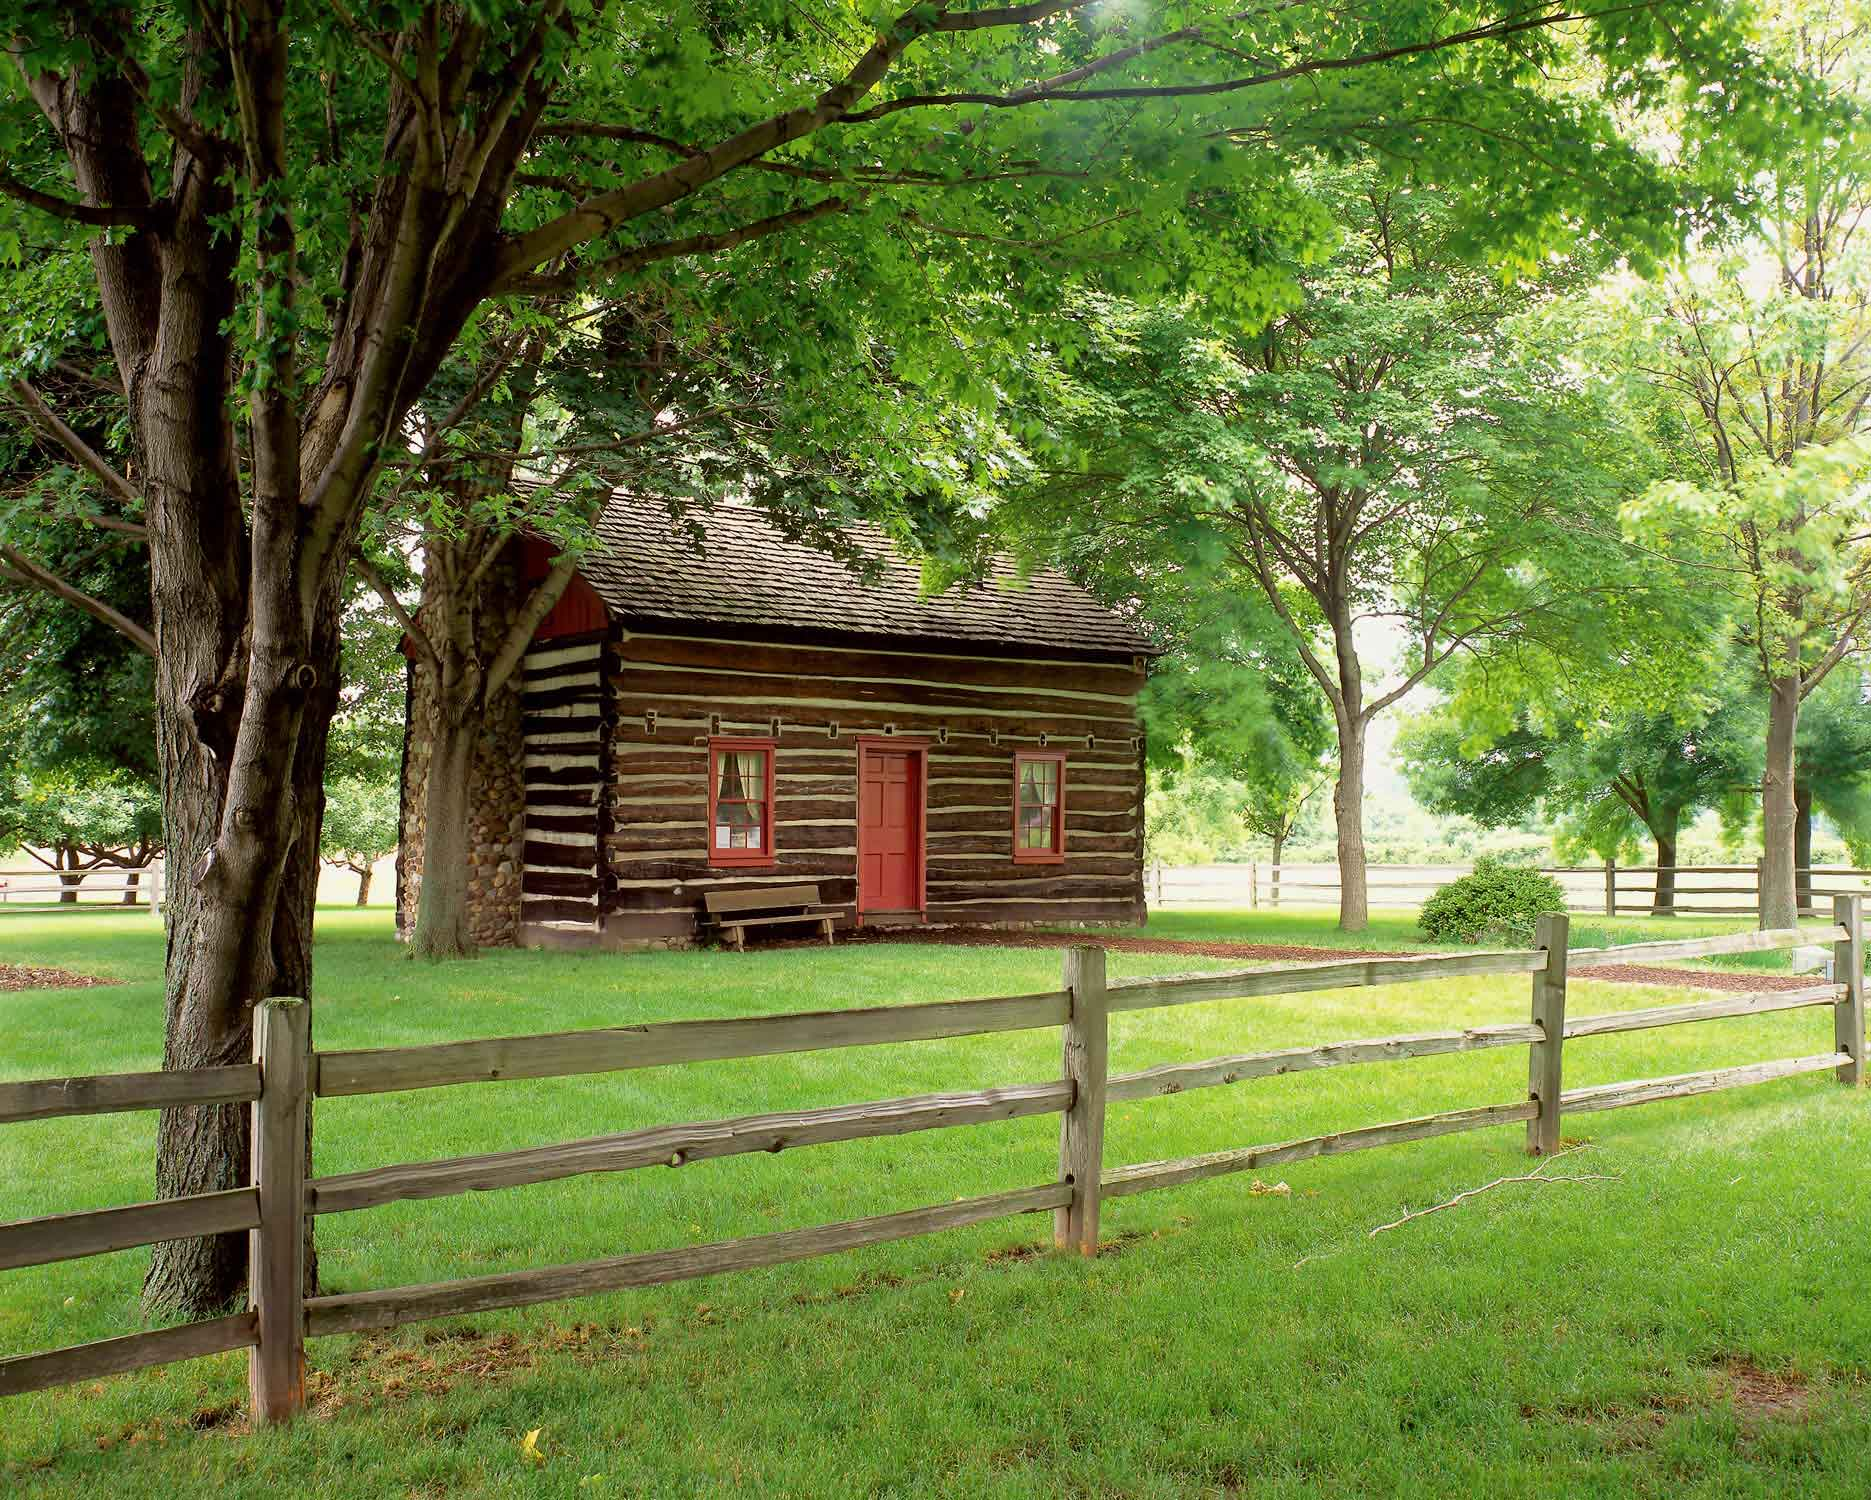 Peter Whitmer Farm, Fayette